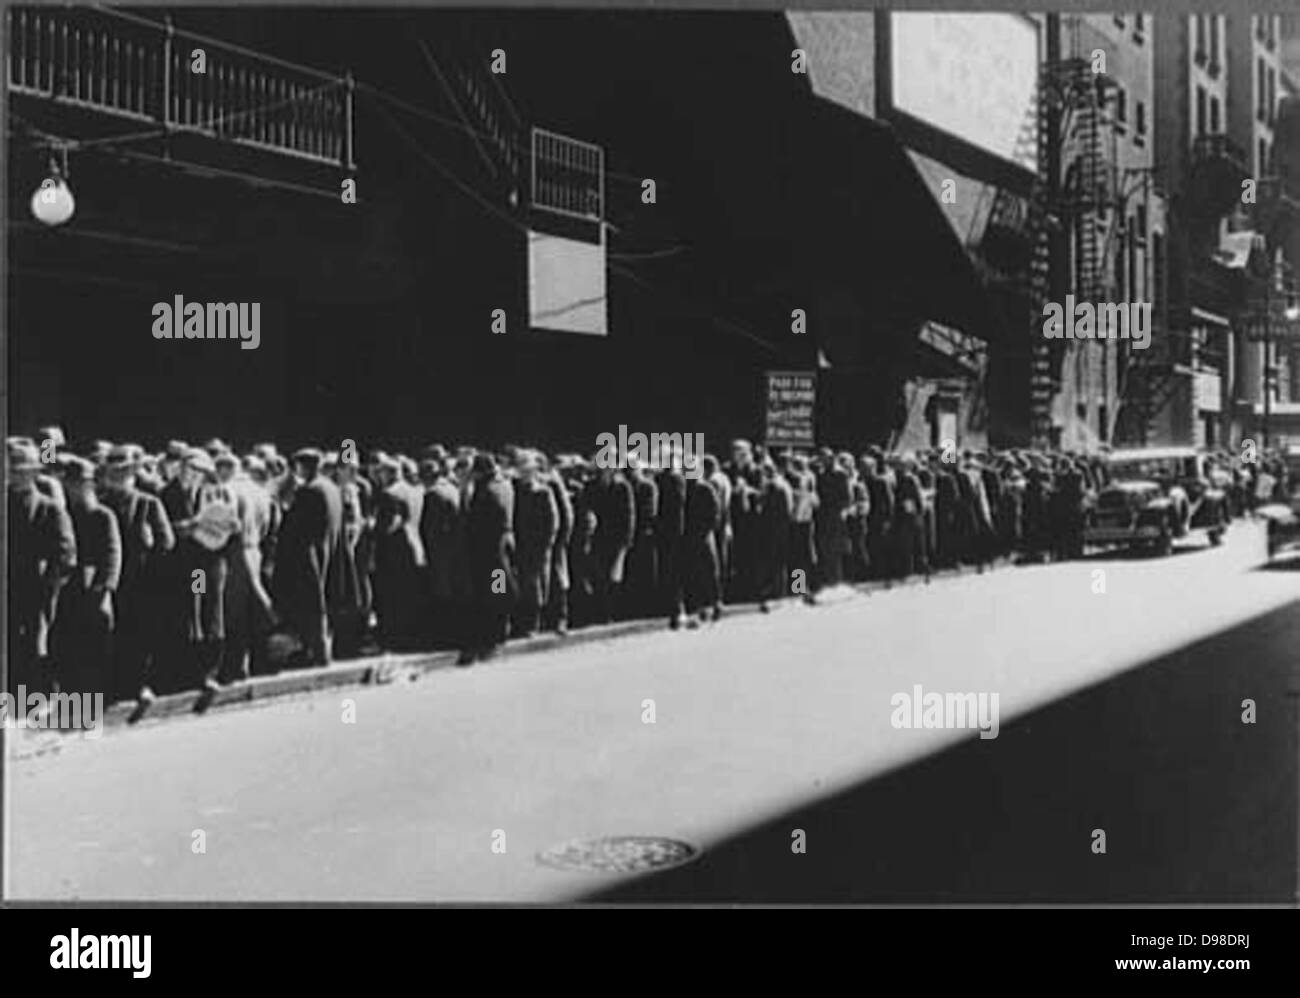 America in the Great Depression, 1930s. Men queue for a five-cent meal. Those on left of sign will get their meal, - Stock Image